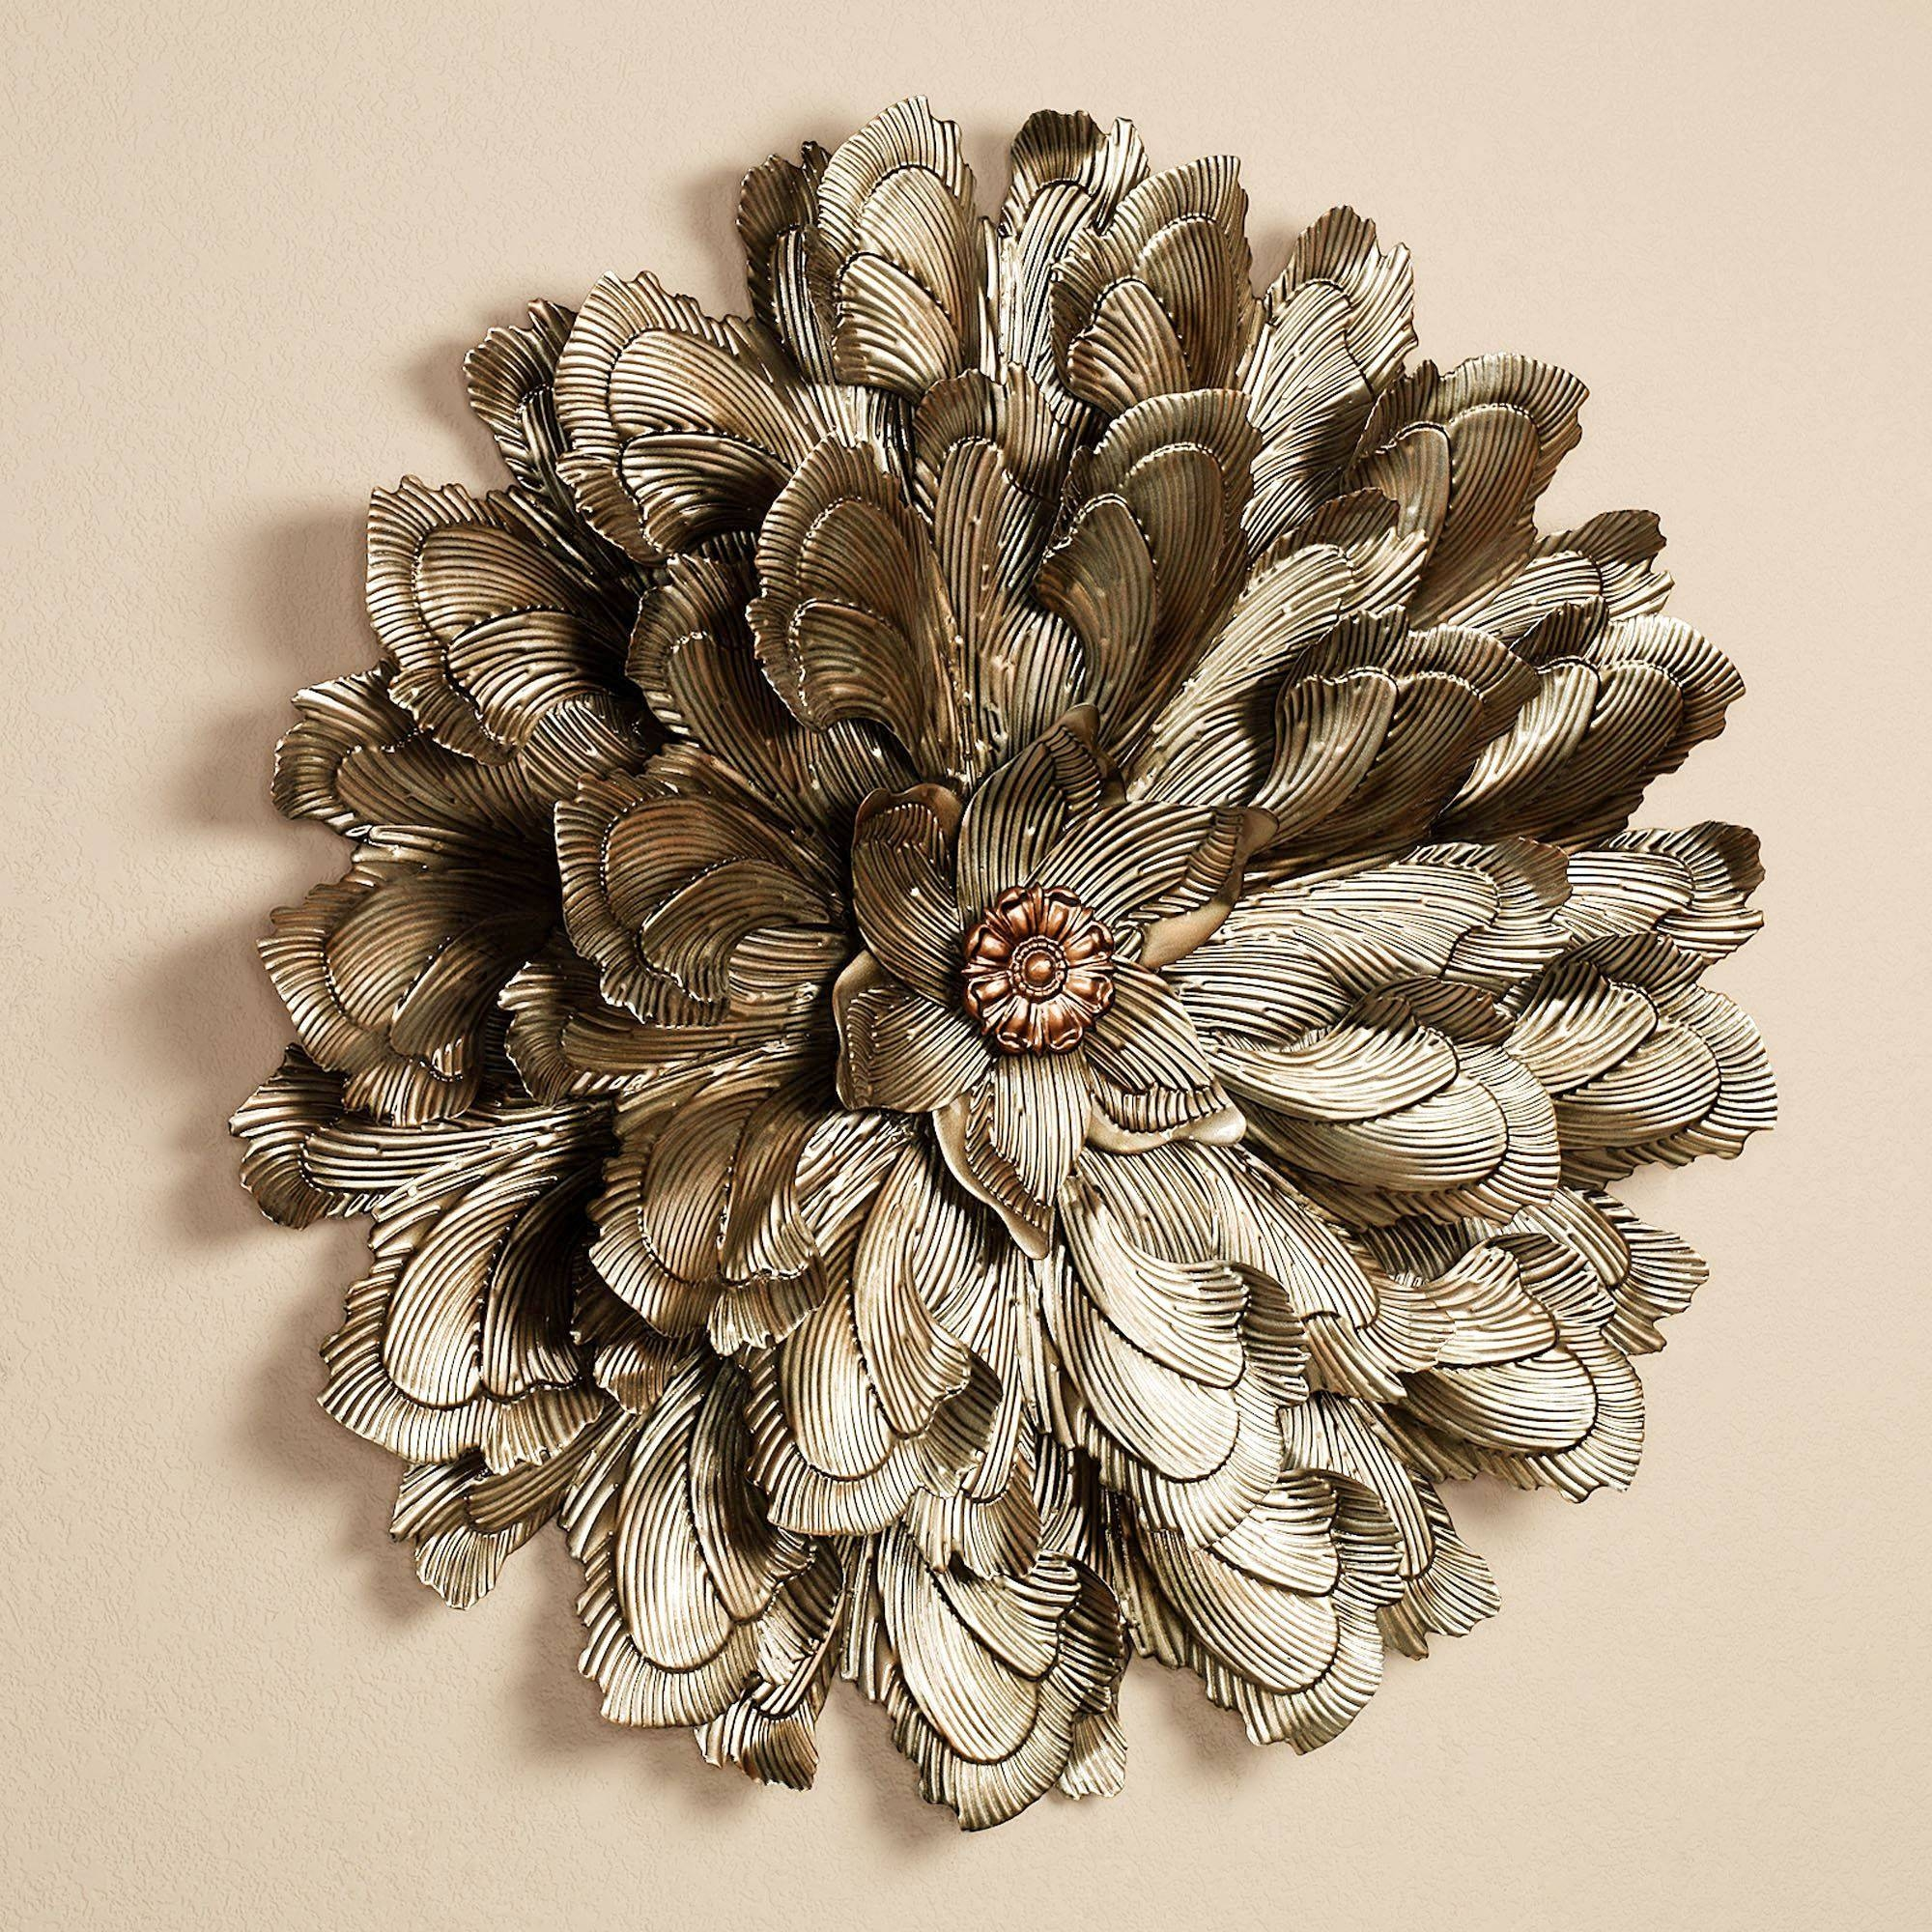 41 Silver Metal Wall Art Flowers, Home Metal Wall Art Wall Decor Throughout Current Large Metal Wall Art Decor (Gallery 16 of 20)